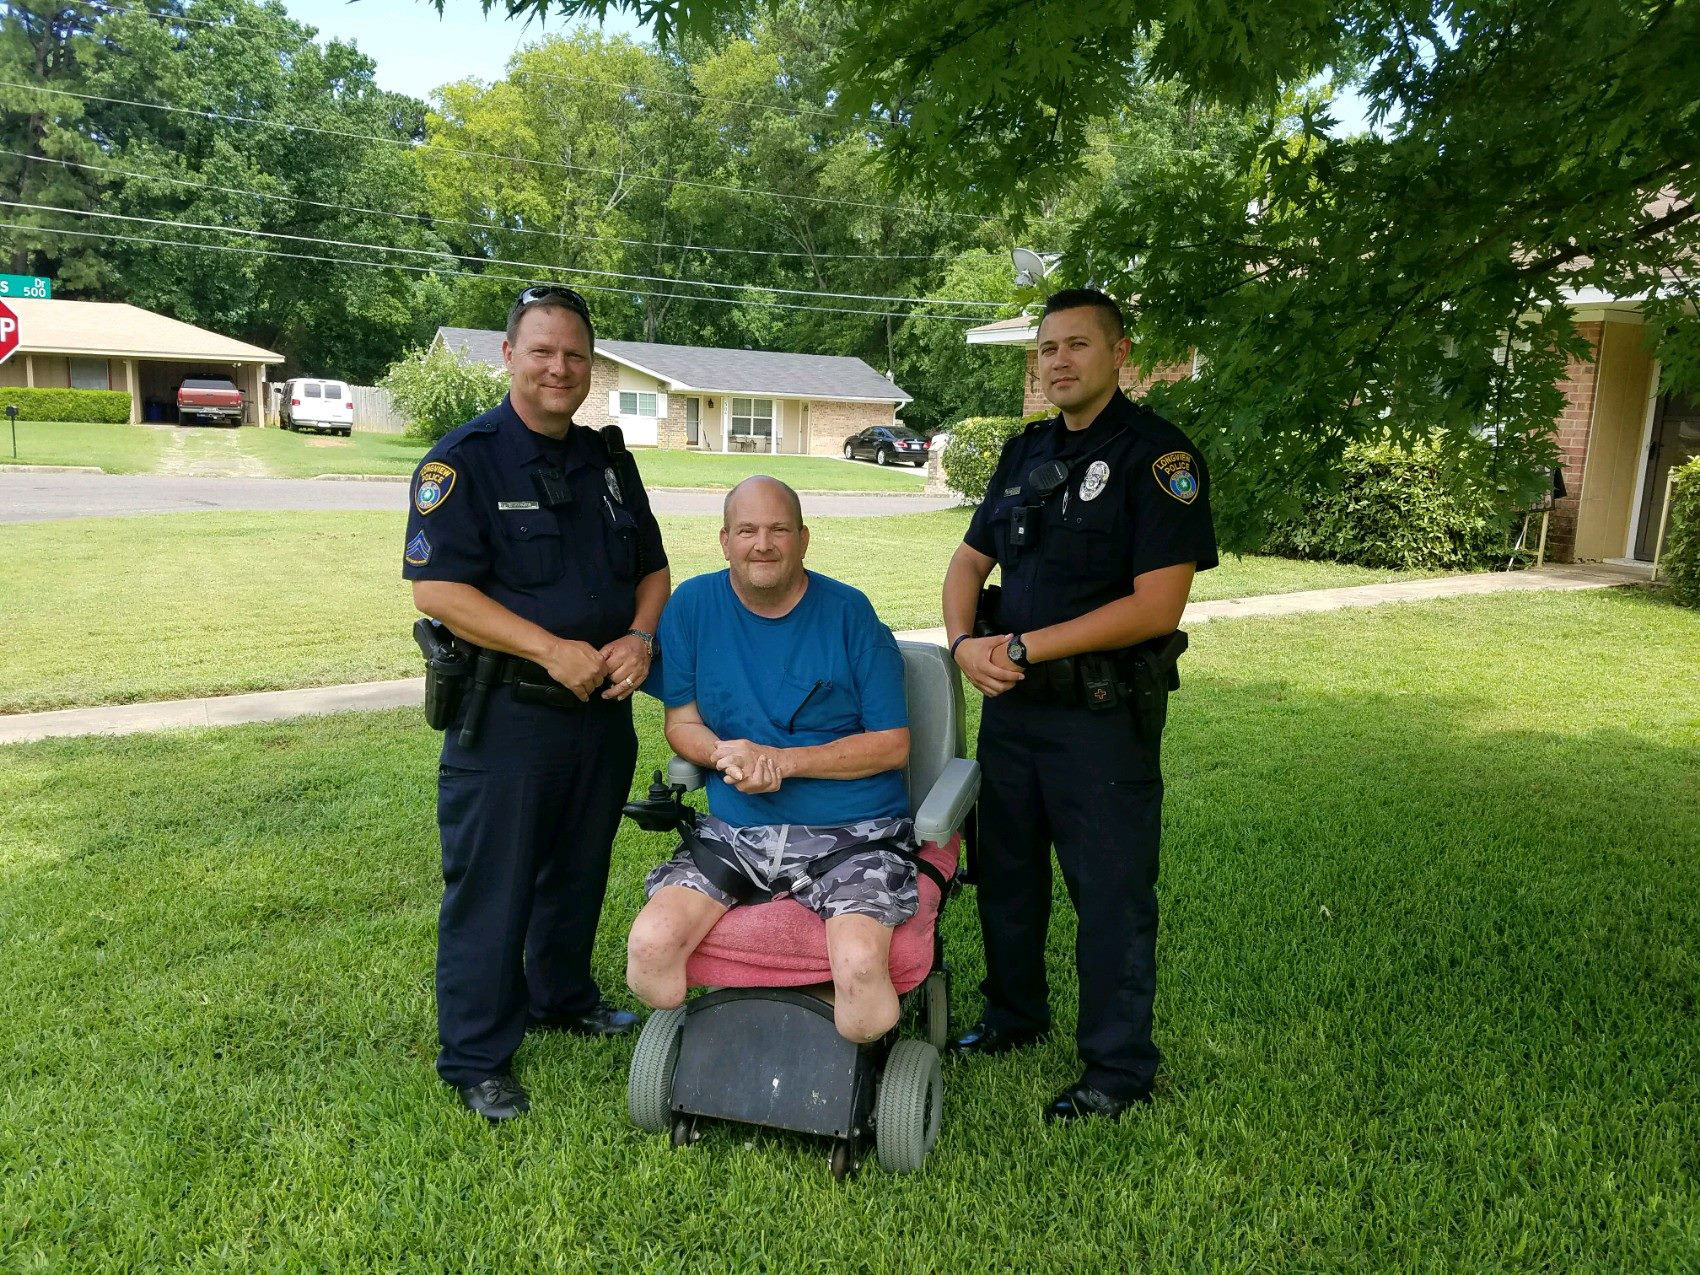 Texas Police Officers Stop To Mow Disabled Veteran's Lawn